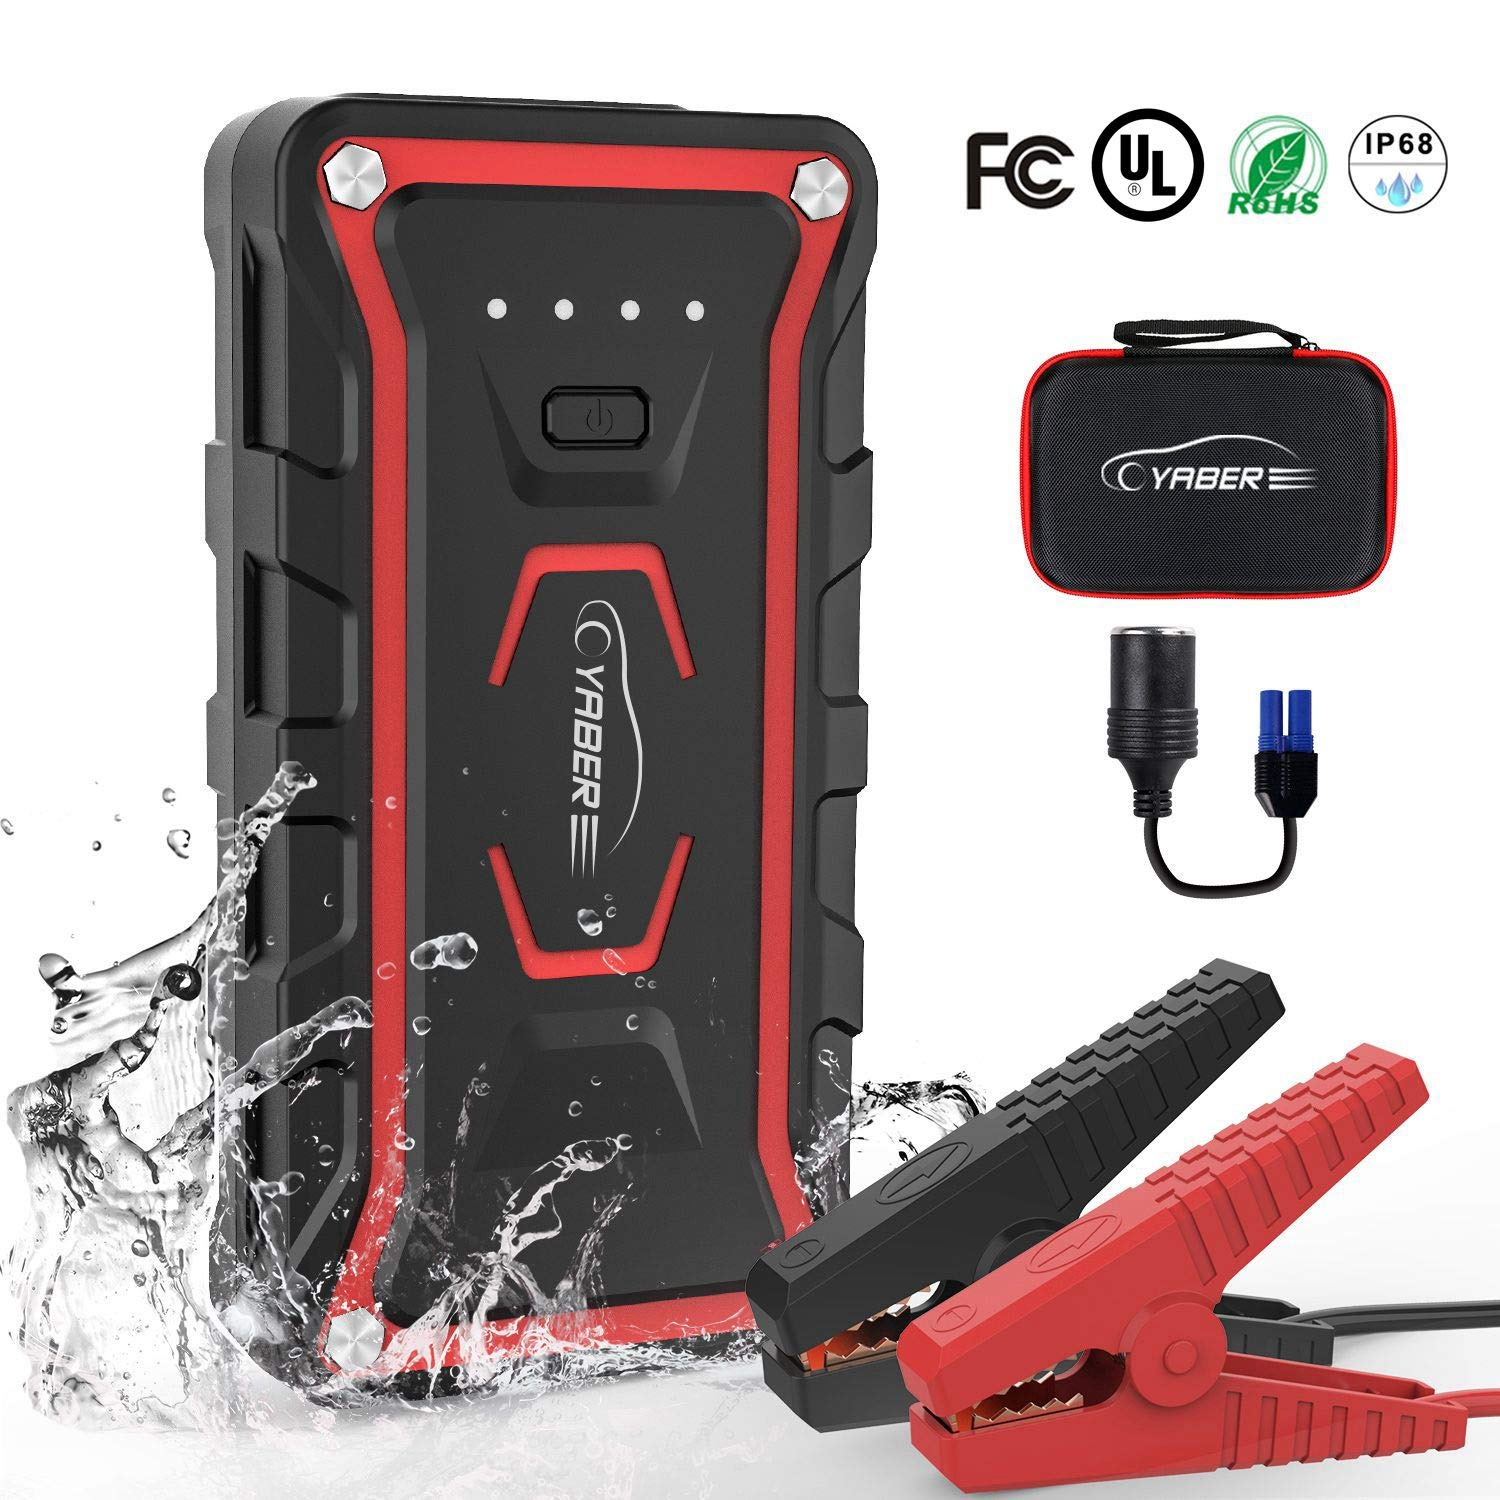 Car Jump Starter,Portable Jump Starter 1500A Peak 20000mAH(All Gas and 7L Diesel) 12V UL Certified Safe Car Jumper Power Pack with Smart Jump Cable Built-in LED Light Lithium Jump Starter by YABER